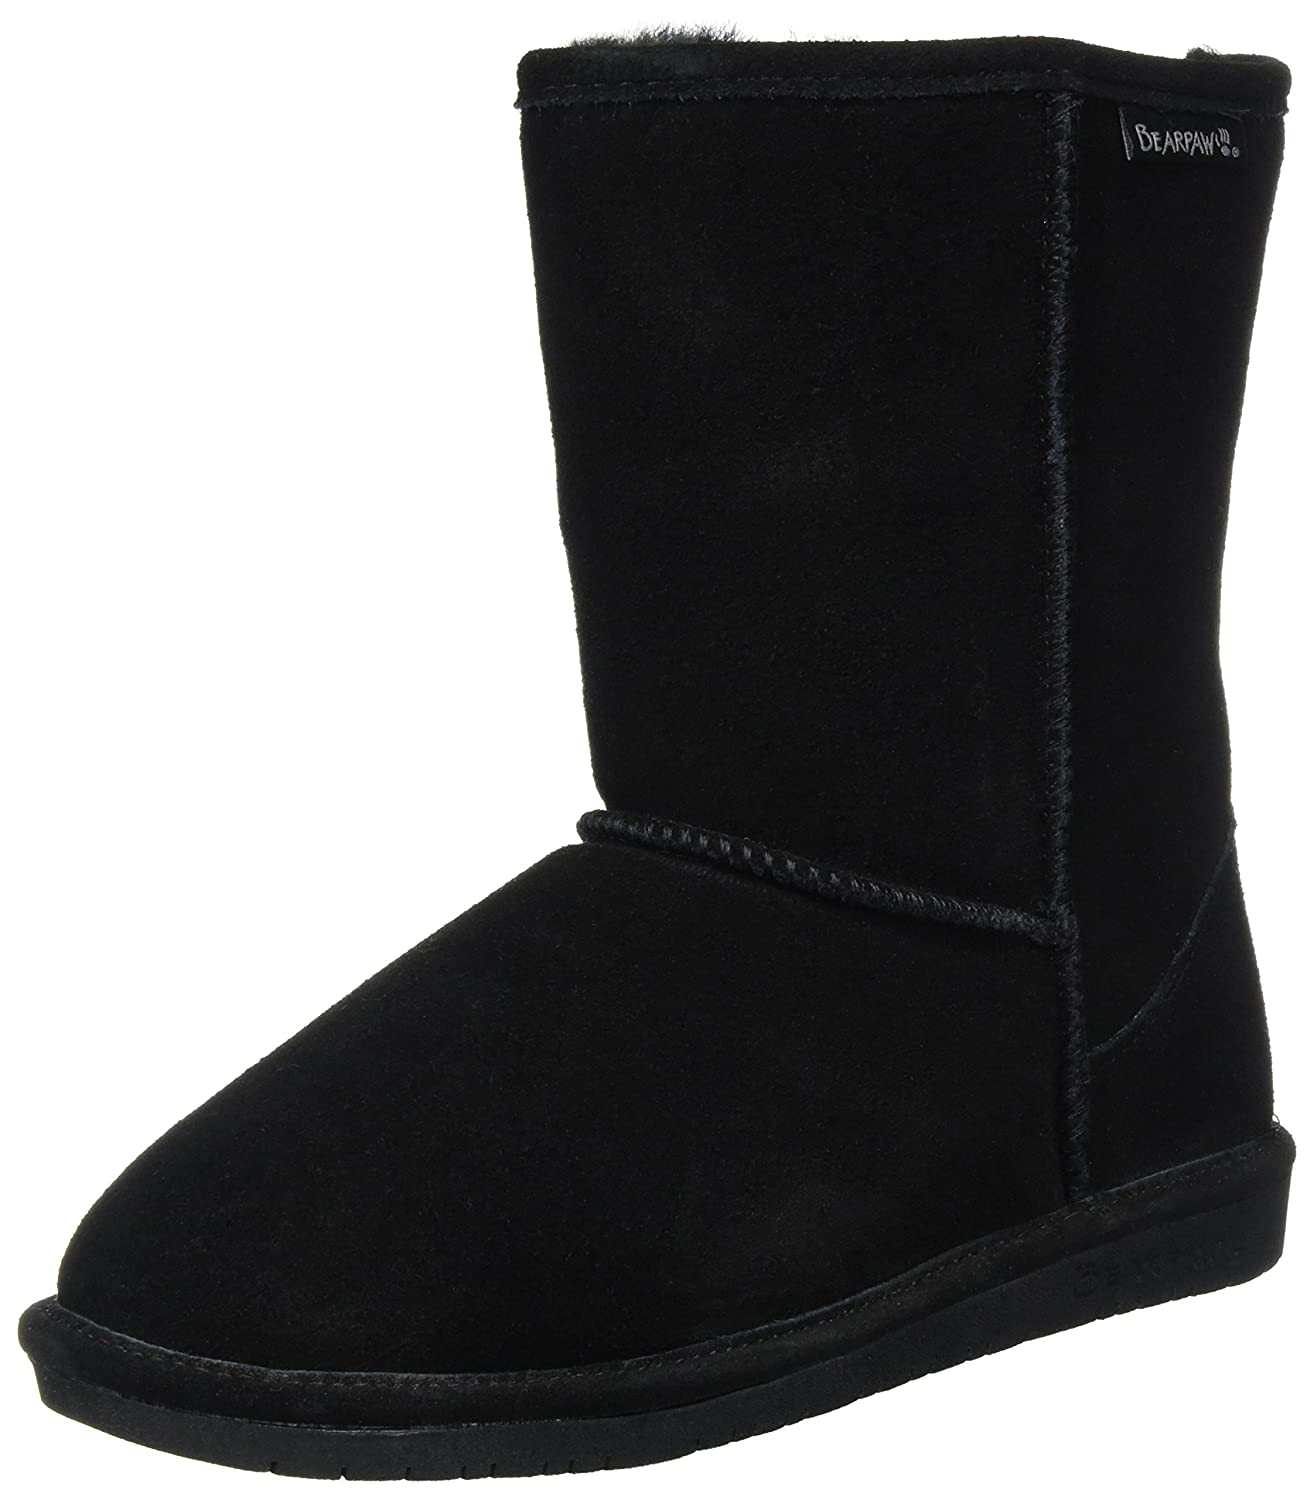 BEARPAW Women's Emma Short Snow Boot B0795BLZYQ 36 M EU|Black Ii